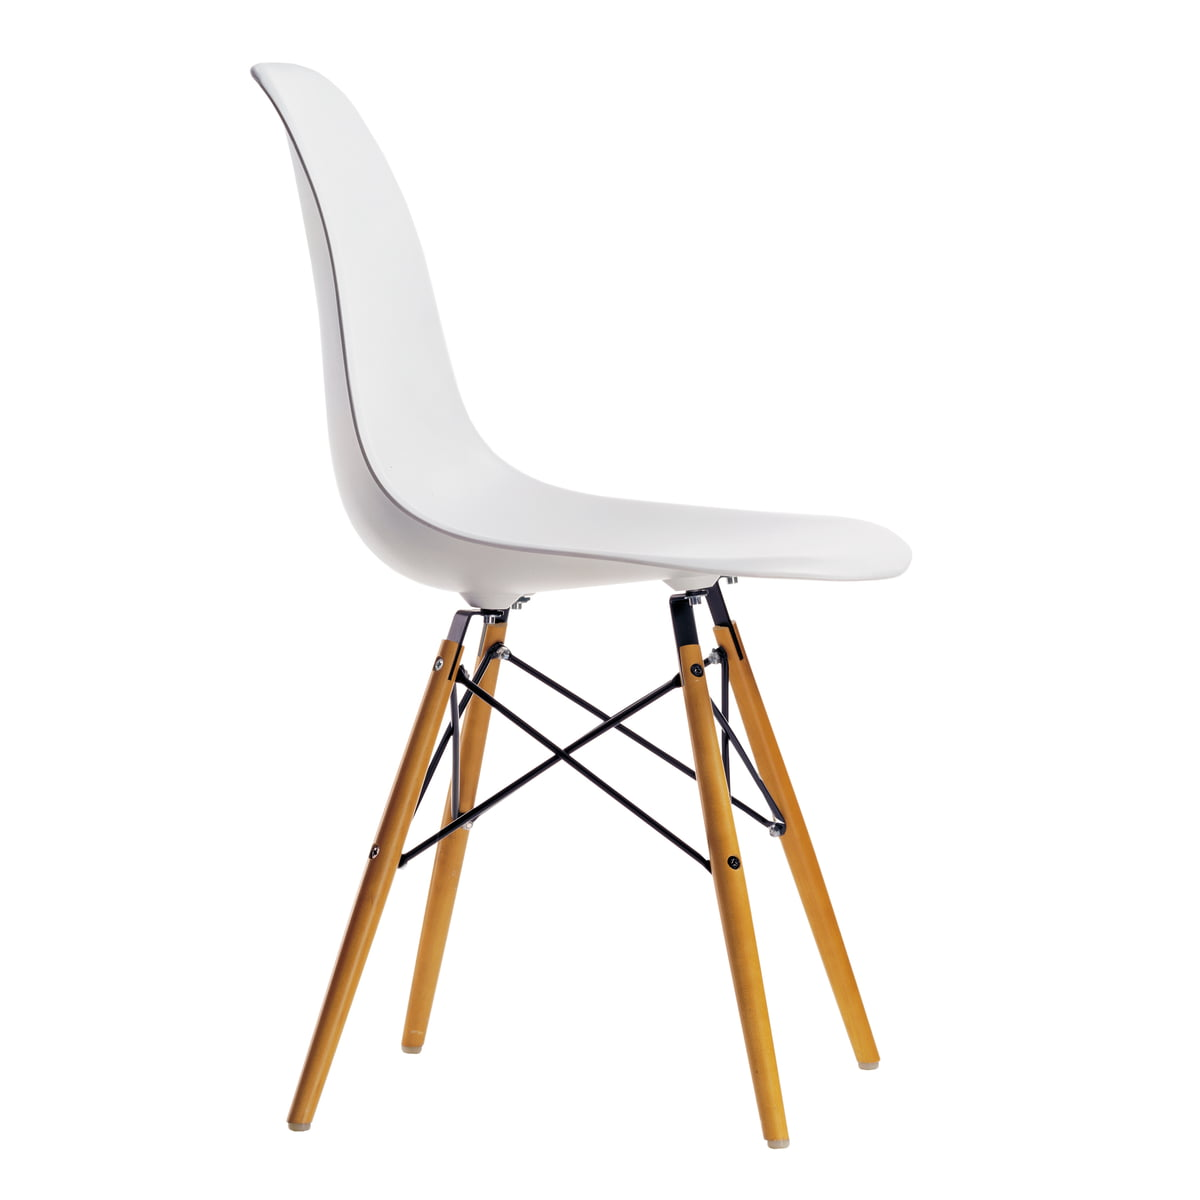 Action: 4 x vitra - Eames plastic side chair dsw, maple yellowish / white  (felt glider white)